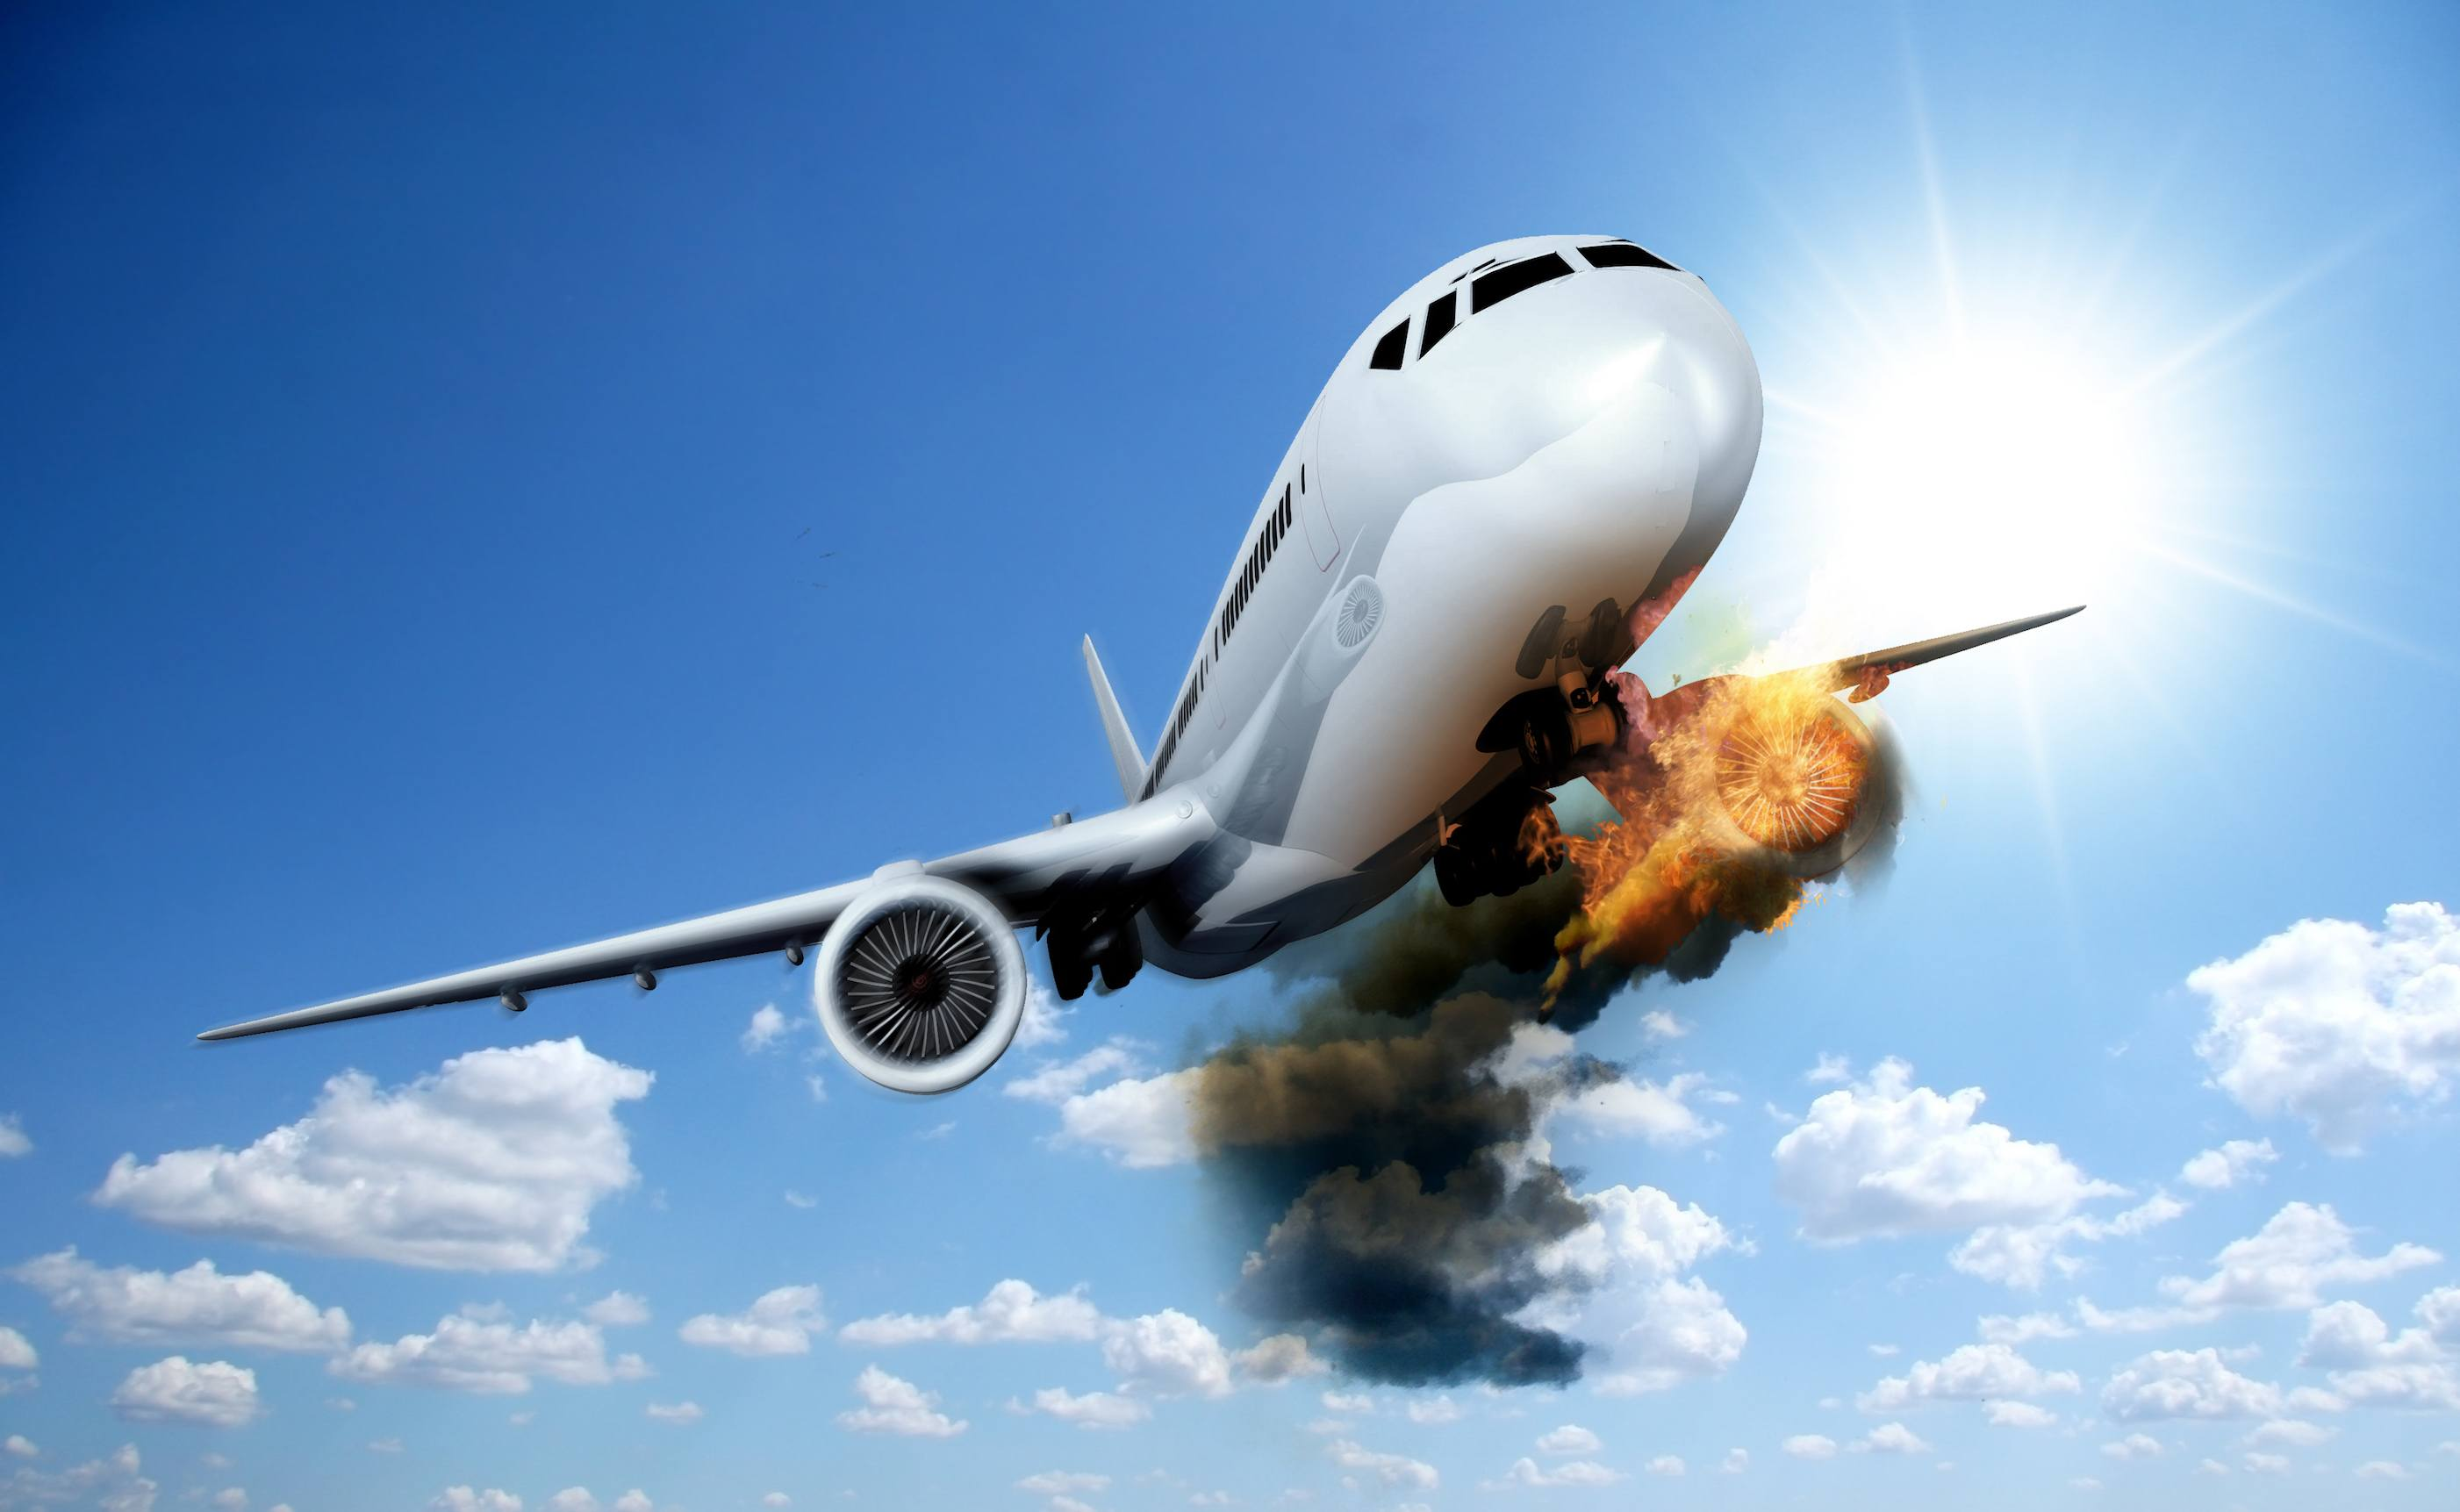 The Southwest Engine Explosion and Other Terrifying Airplane